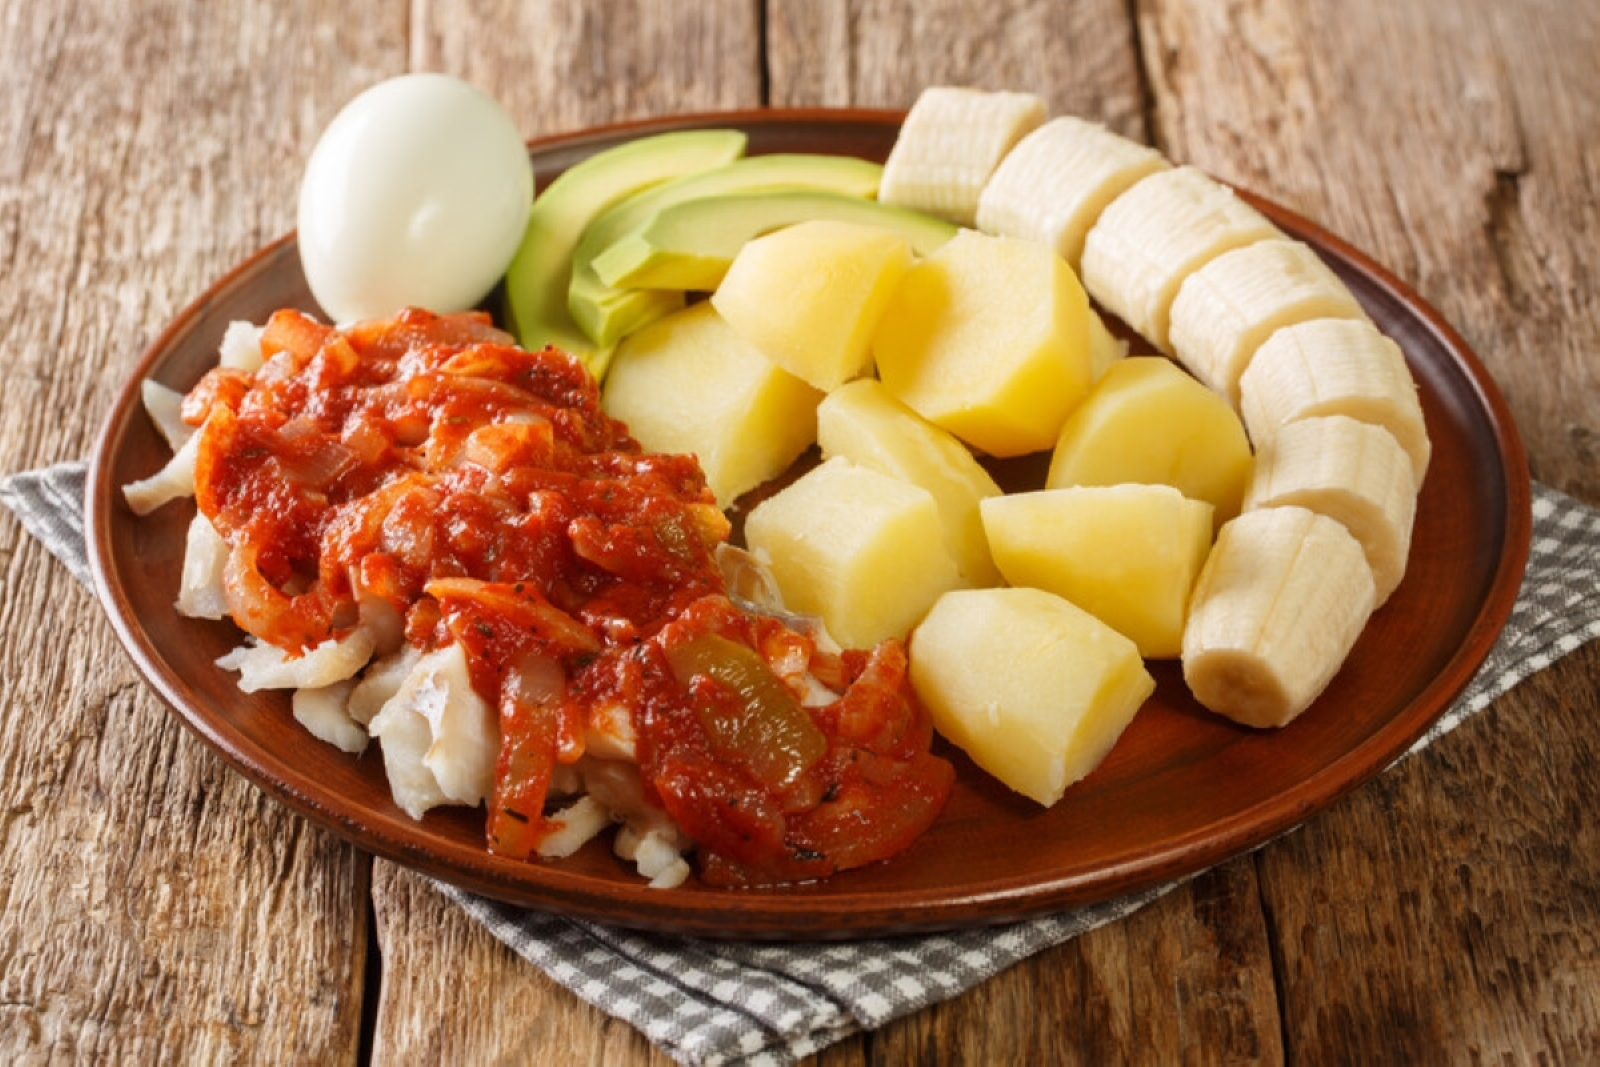 salted cod with onion tomato sauce and fresh banana, egg and avocado on a brown plate sitting on a plaid napkin on a table